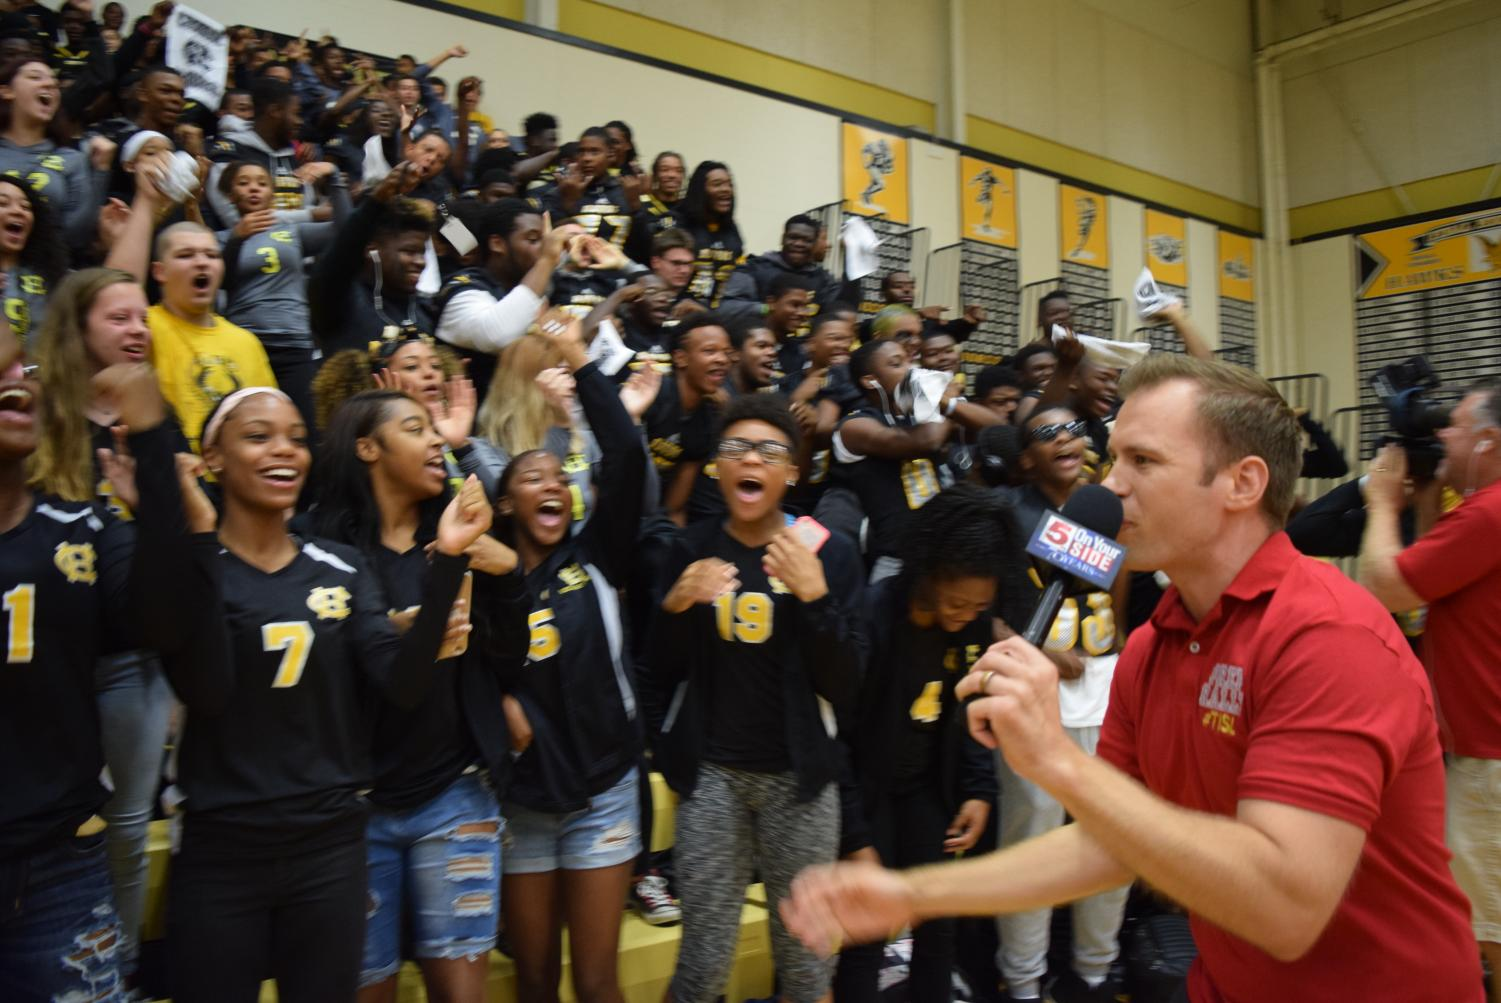 KSDK's Ryan Dean gets the crowd fired up early in the morning at the Fall 2017 Pep Rally that was featured on Channel 5's morning show.